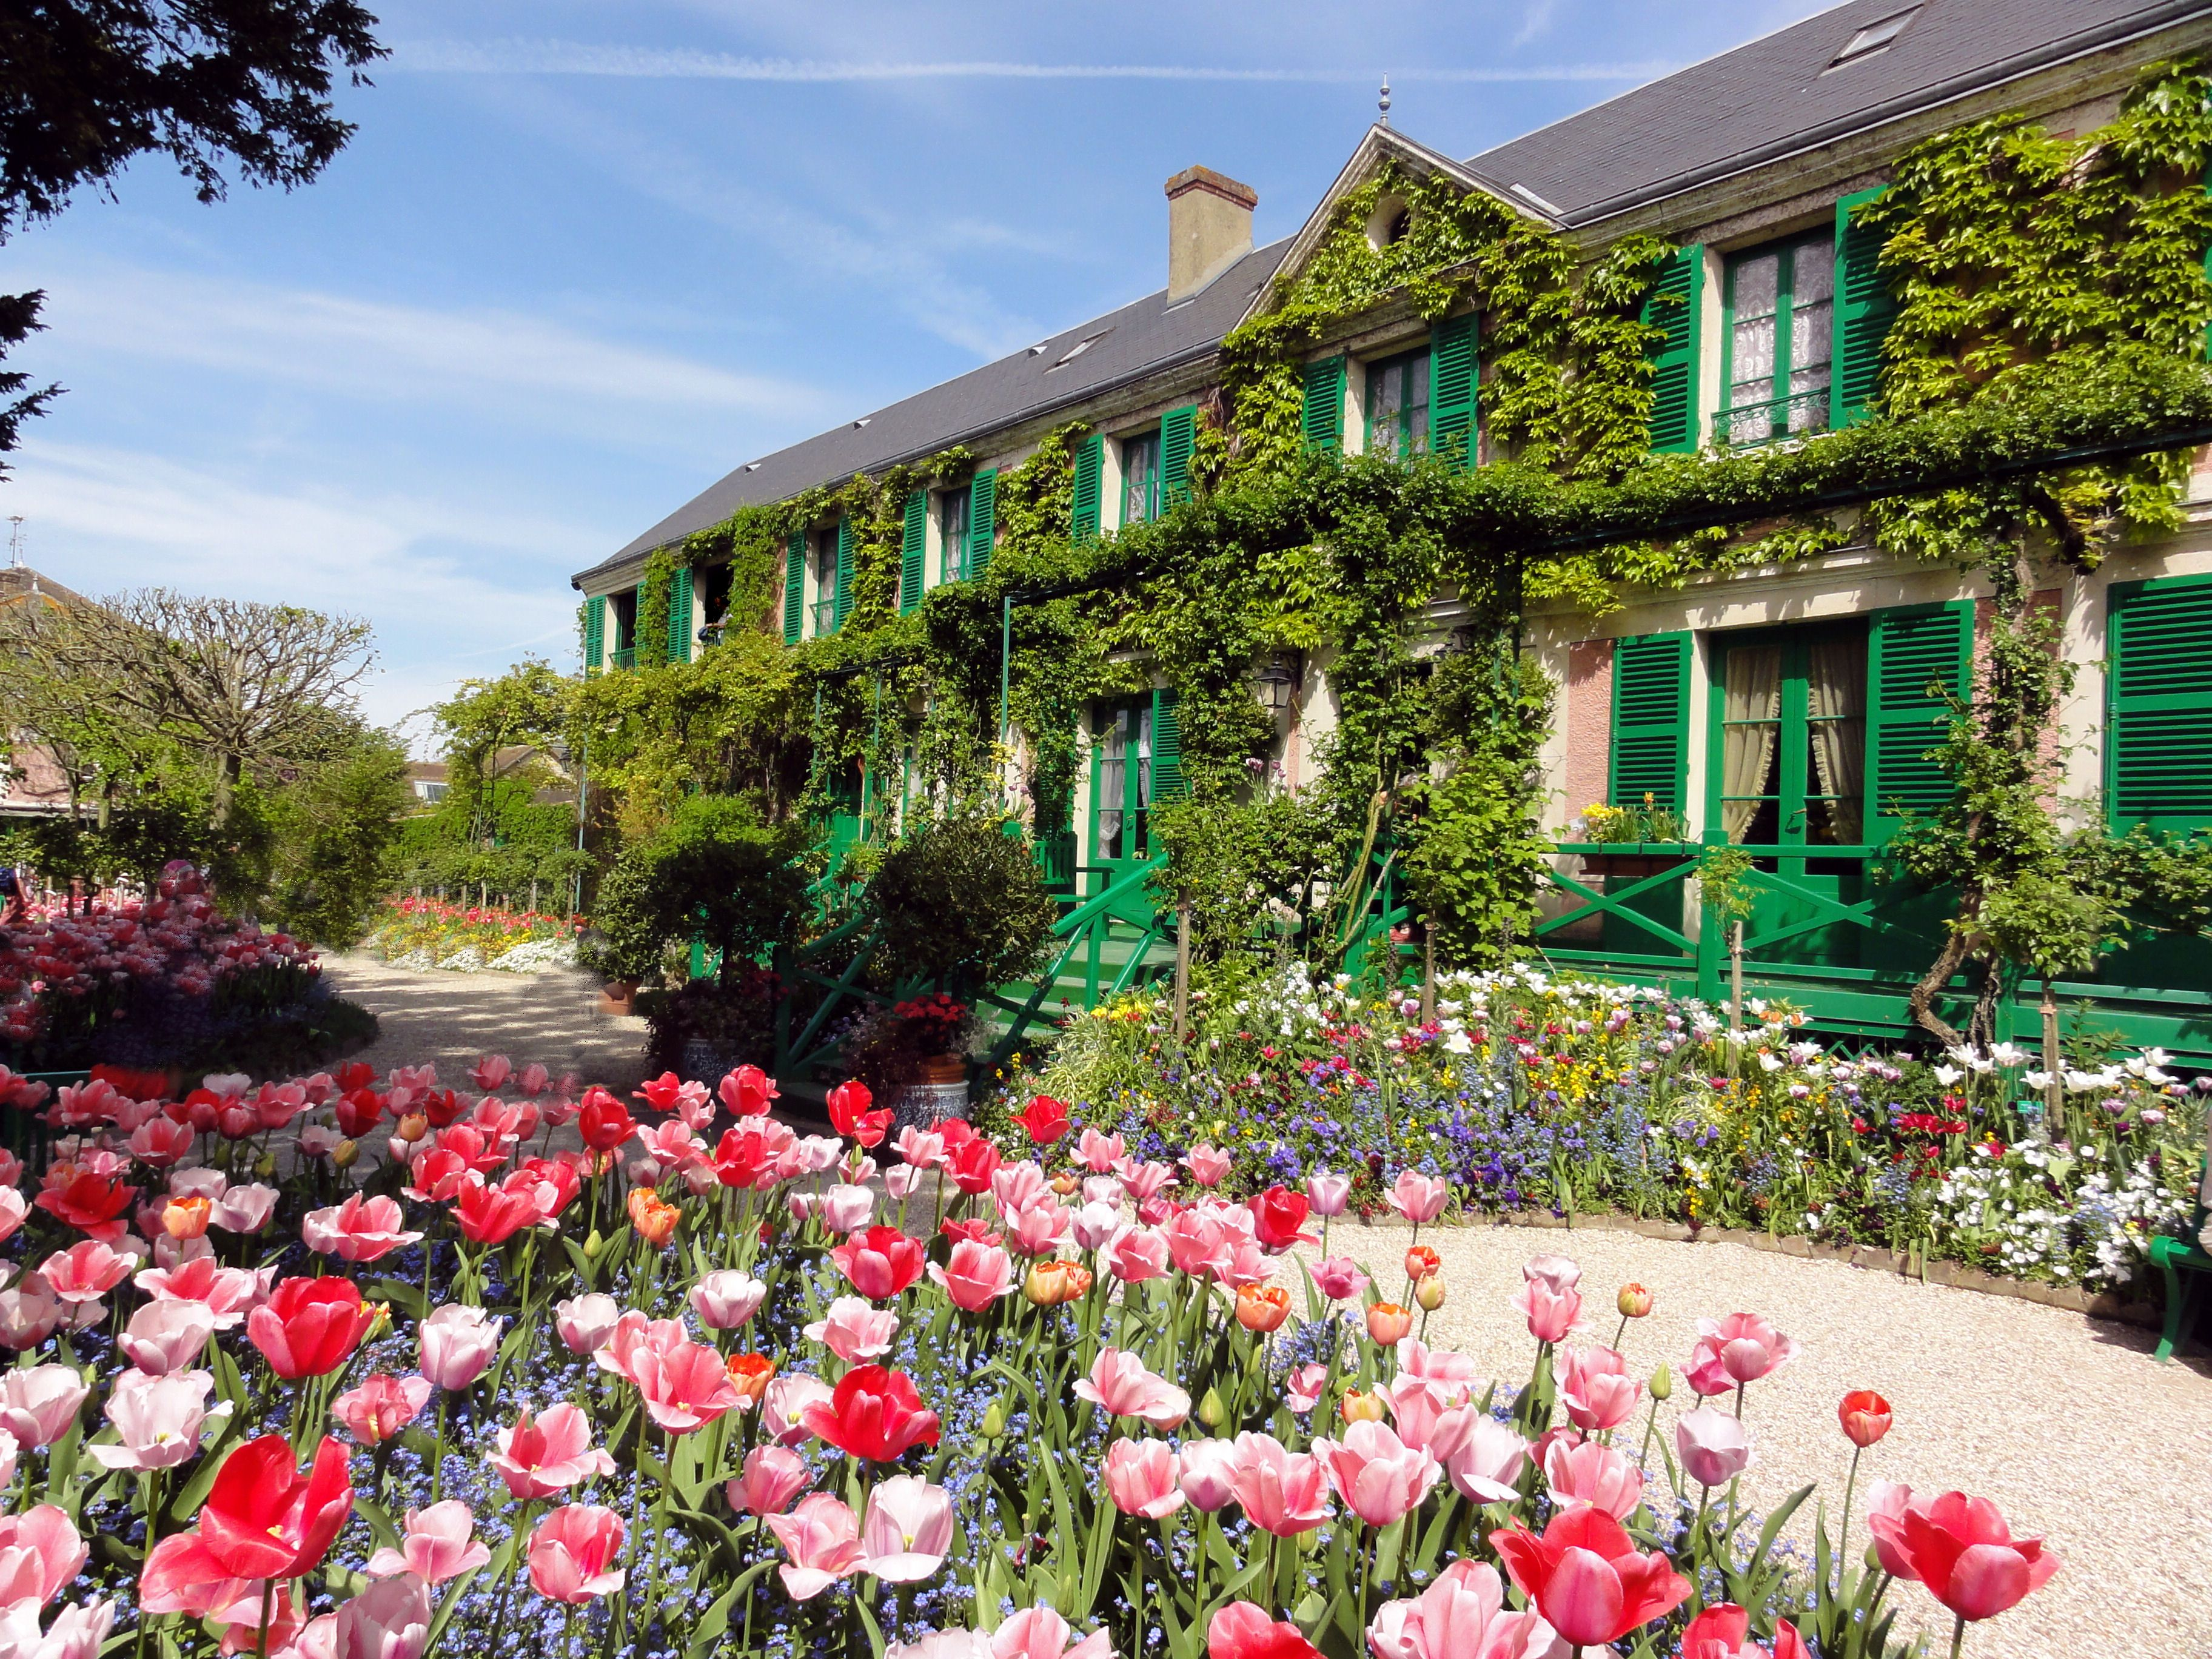 Claude monet 39 s house at giverny france claude monet french impresionist 1840 1926 - Les jardins de monet ...